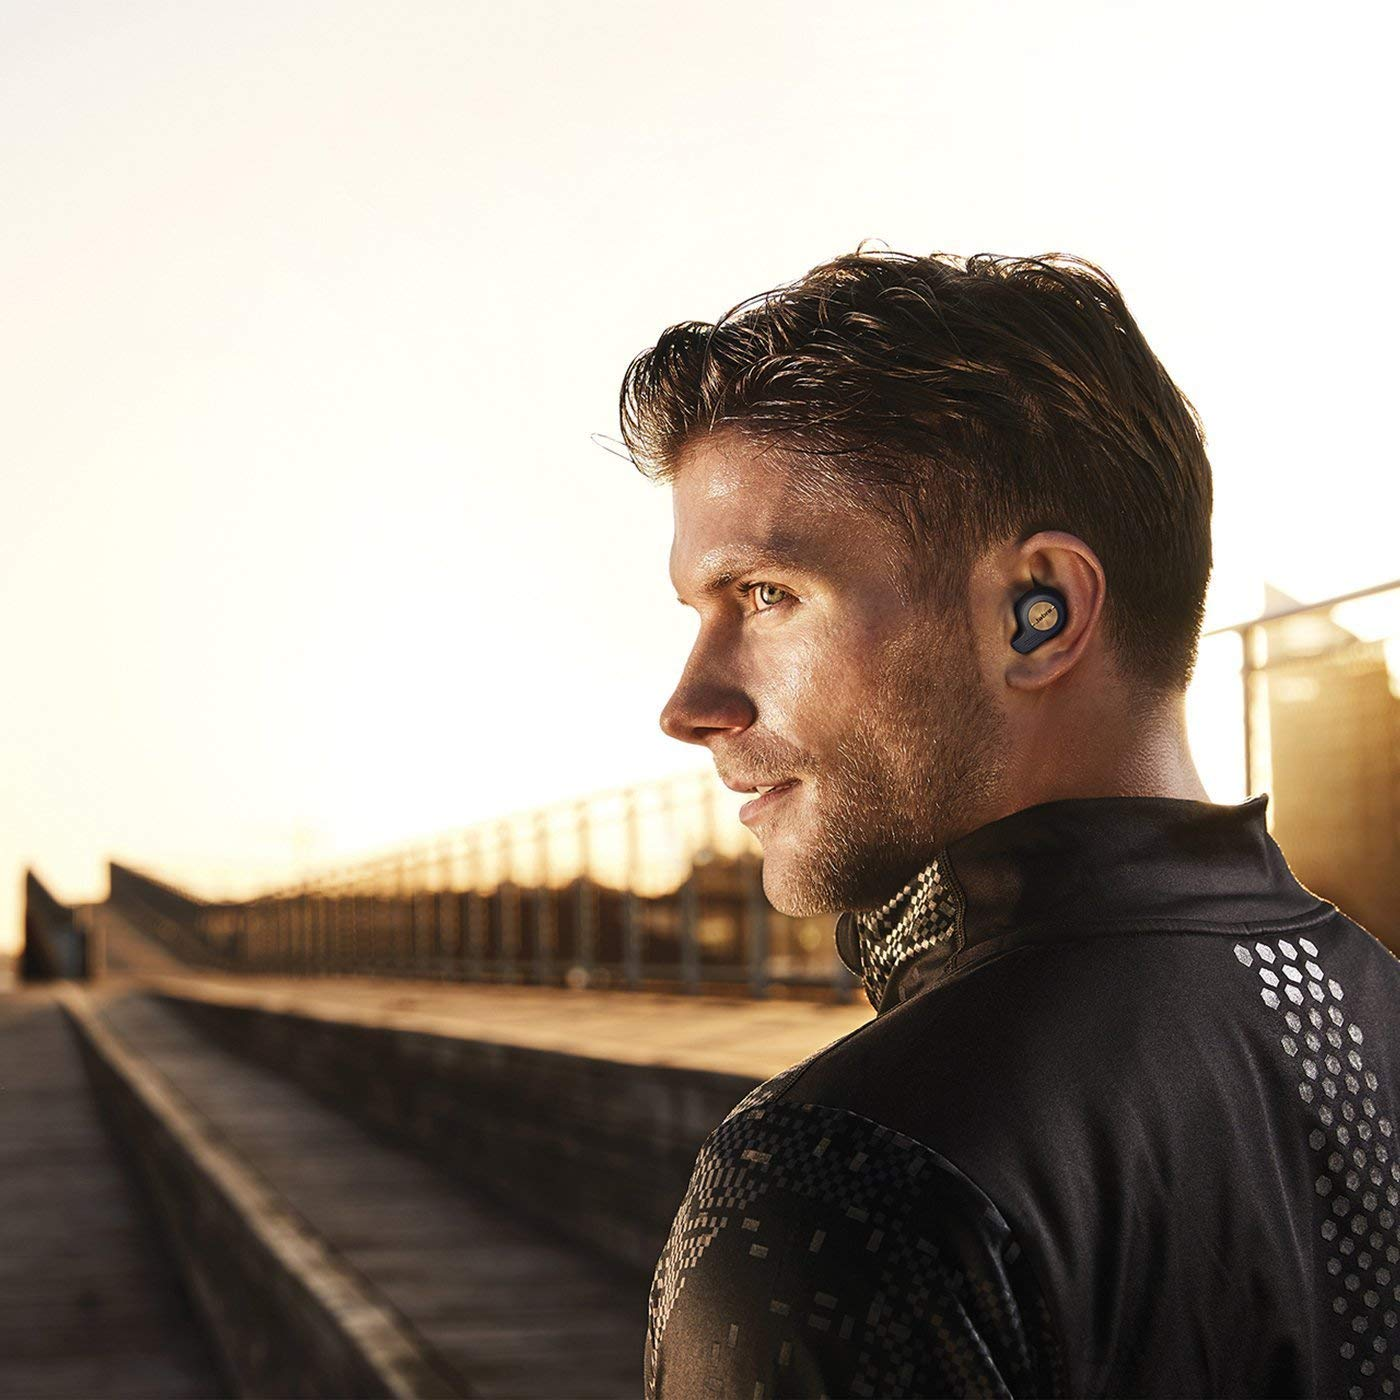 77e9b4b0e83 Jabra Elite Active 65t Alexa Enabled True Wireless Sports Earbuds with  Charging Case-in Bluetooth Earphones & Headphones from Consumer Electronics  on ...